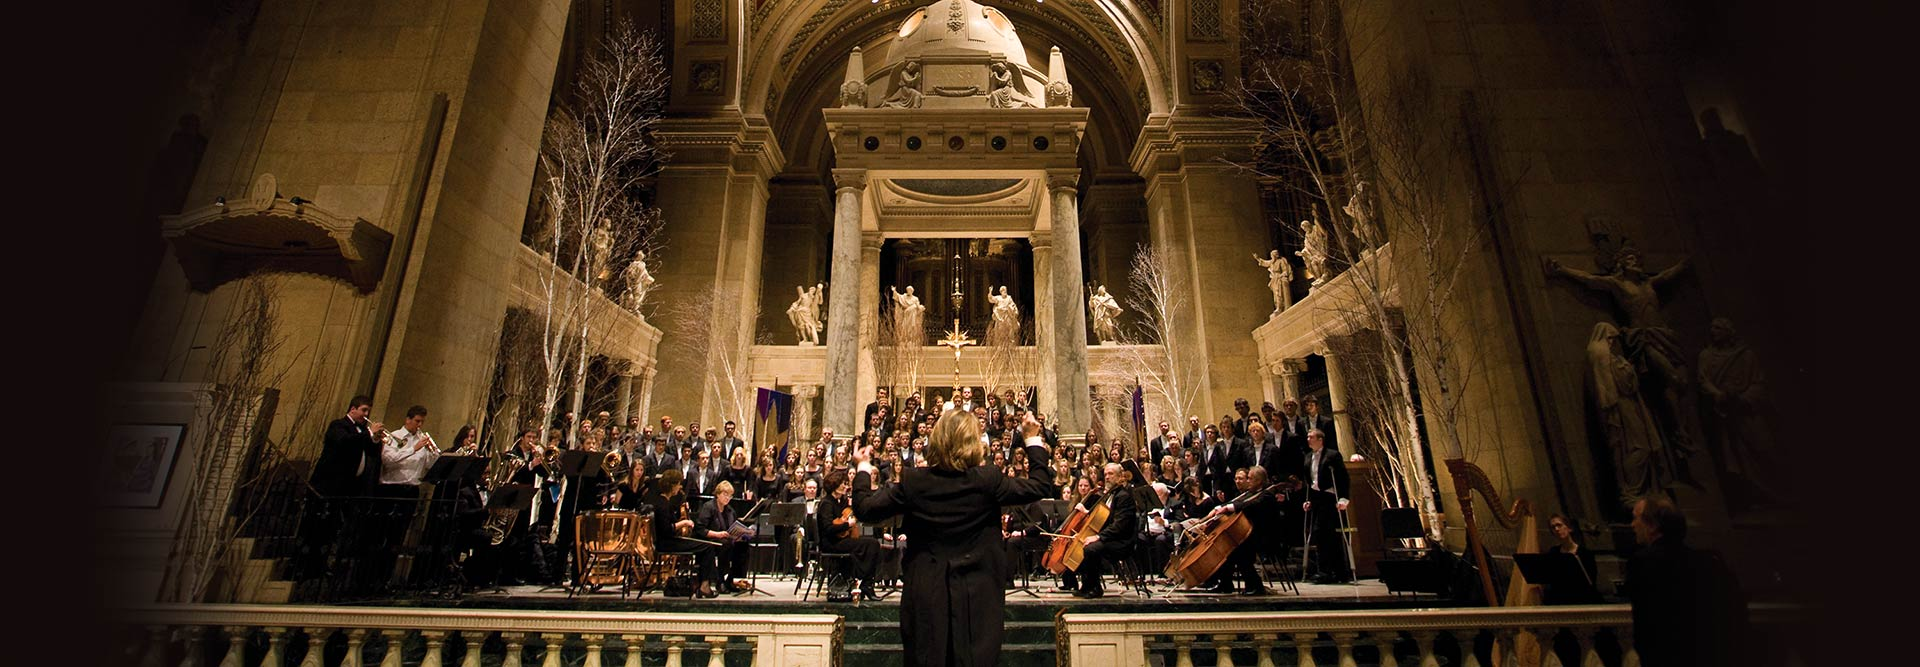 Tickets for the annual christmas concerts at sju and the basilica of saint mary on sale